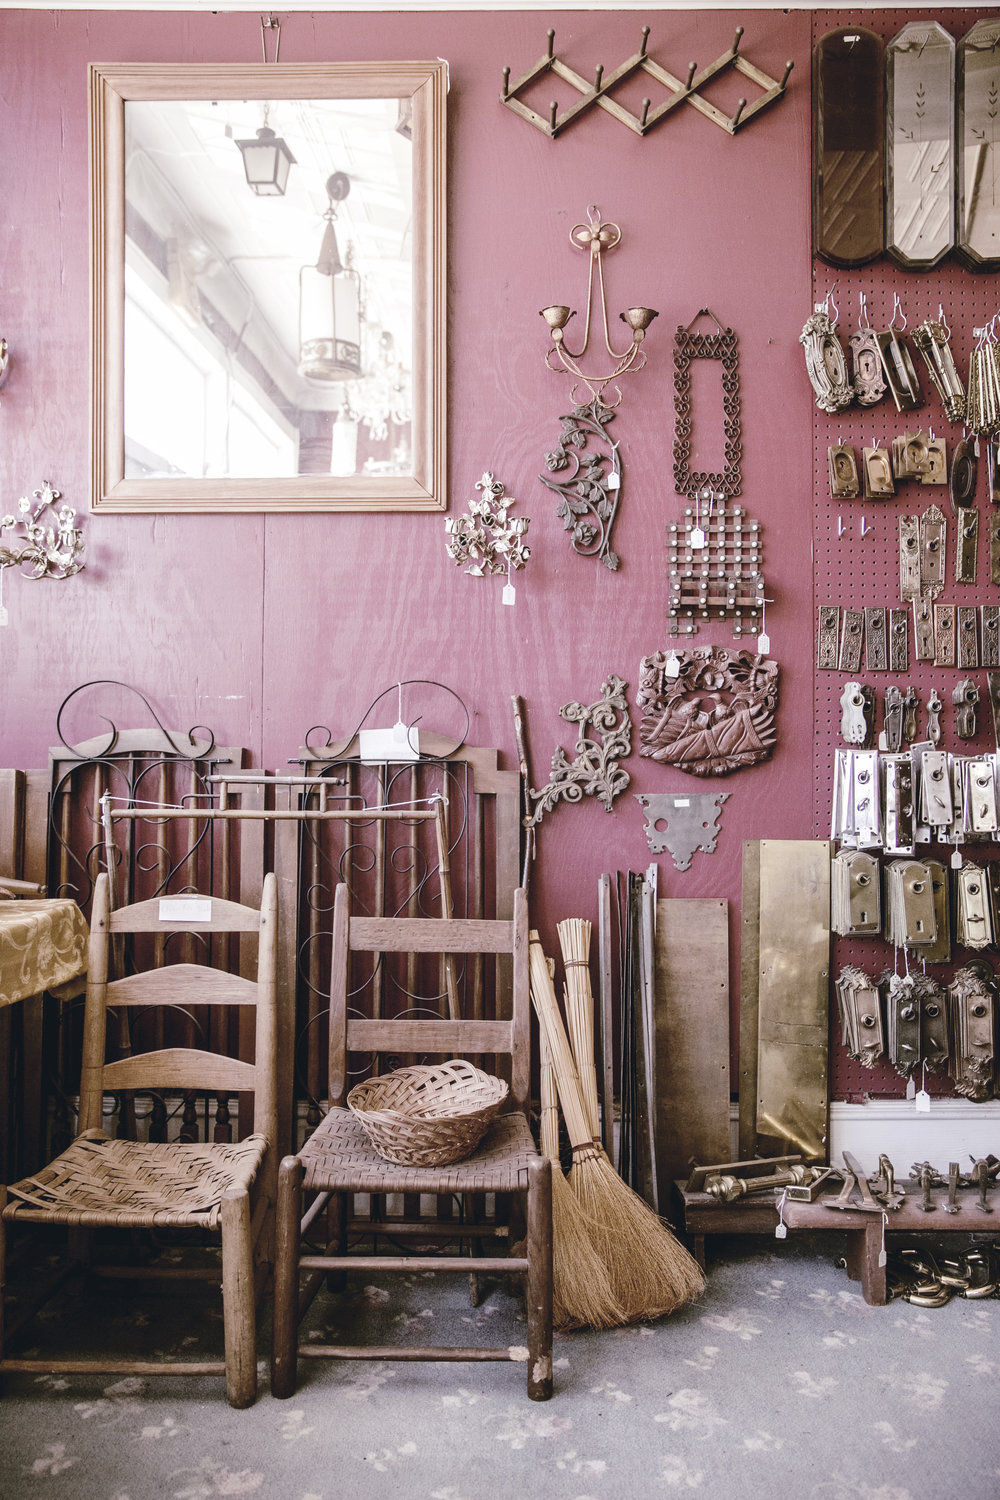 antique chairs and hardware / heirloomed